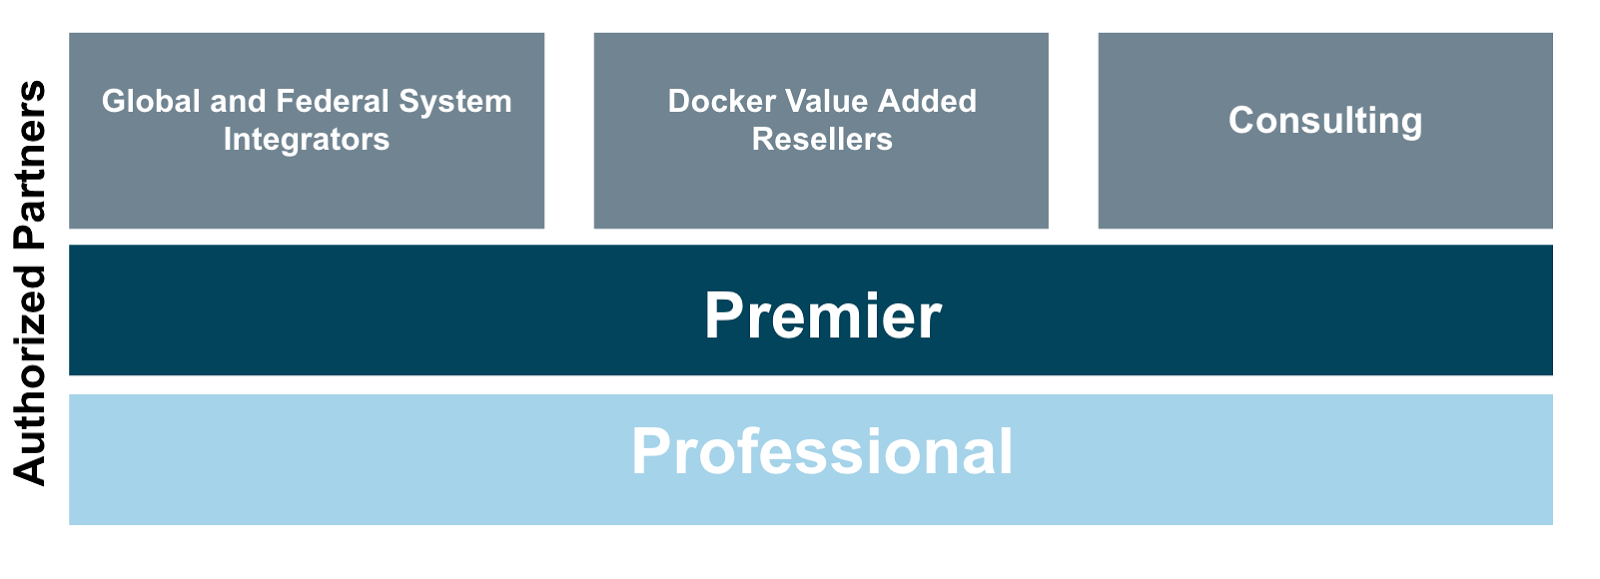 Introducing the Docker Authorized Partner Program - Docker Blog